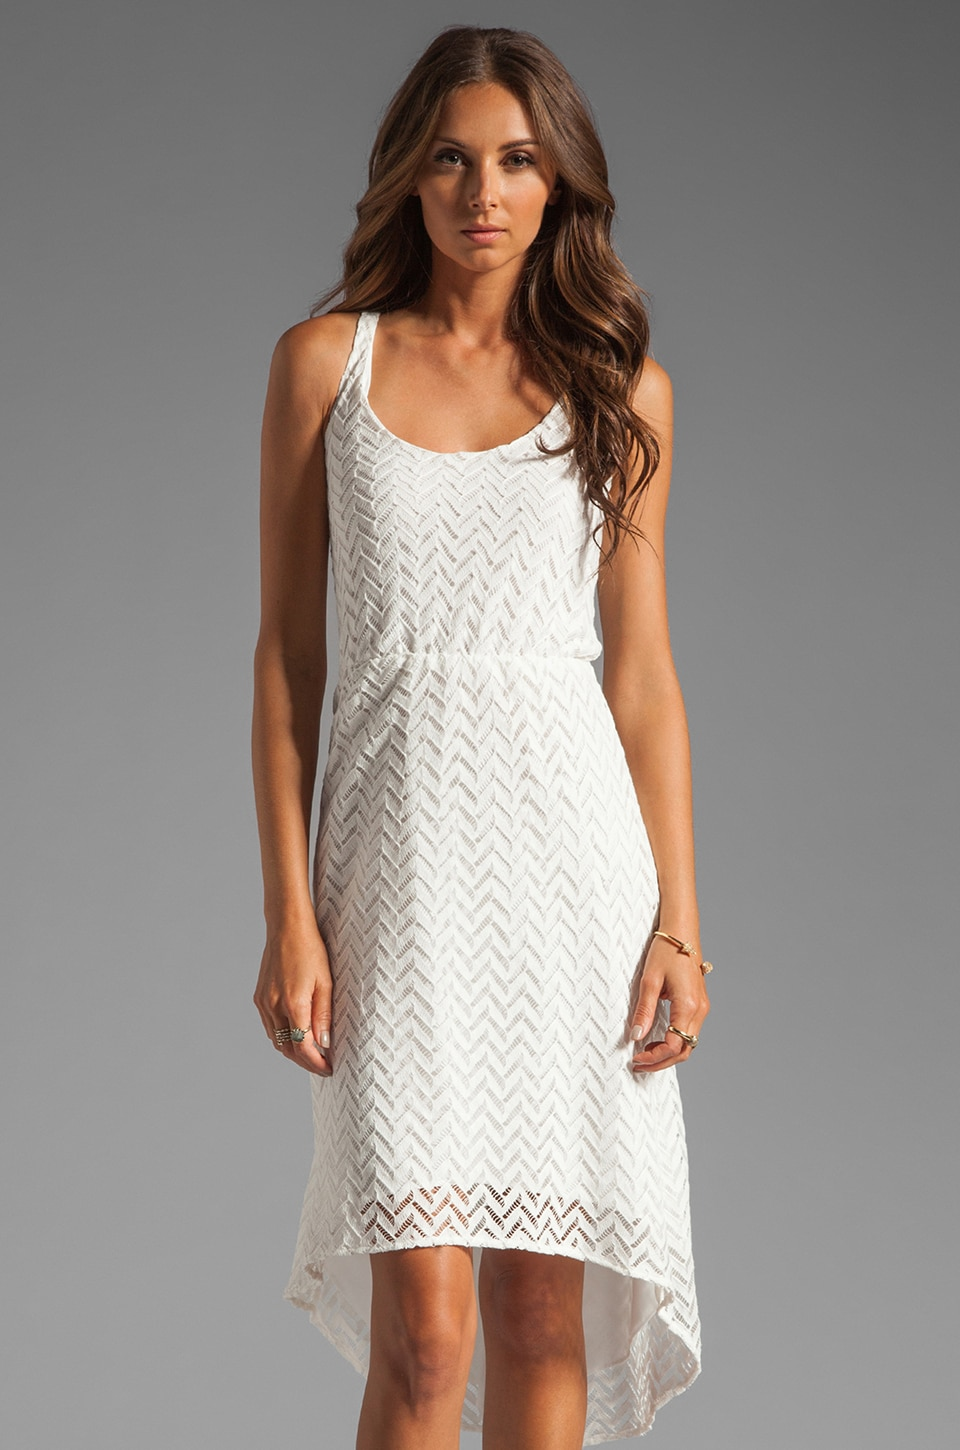 Dolce Vita Tannis Dress in Cream